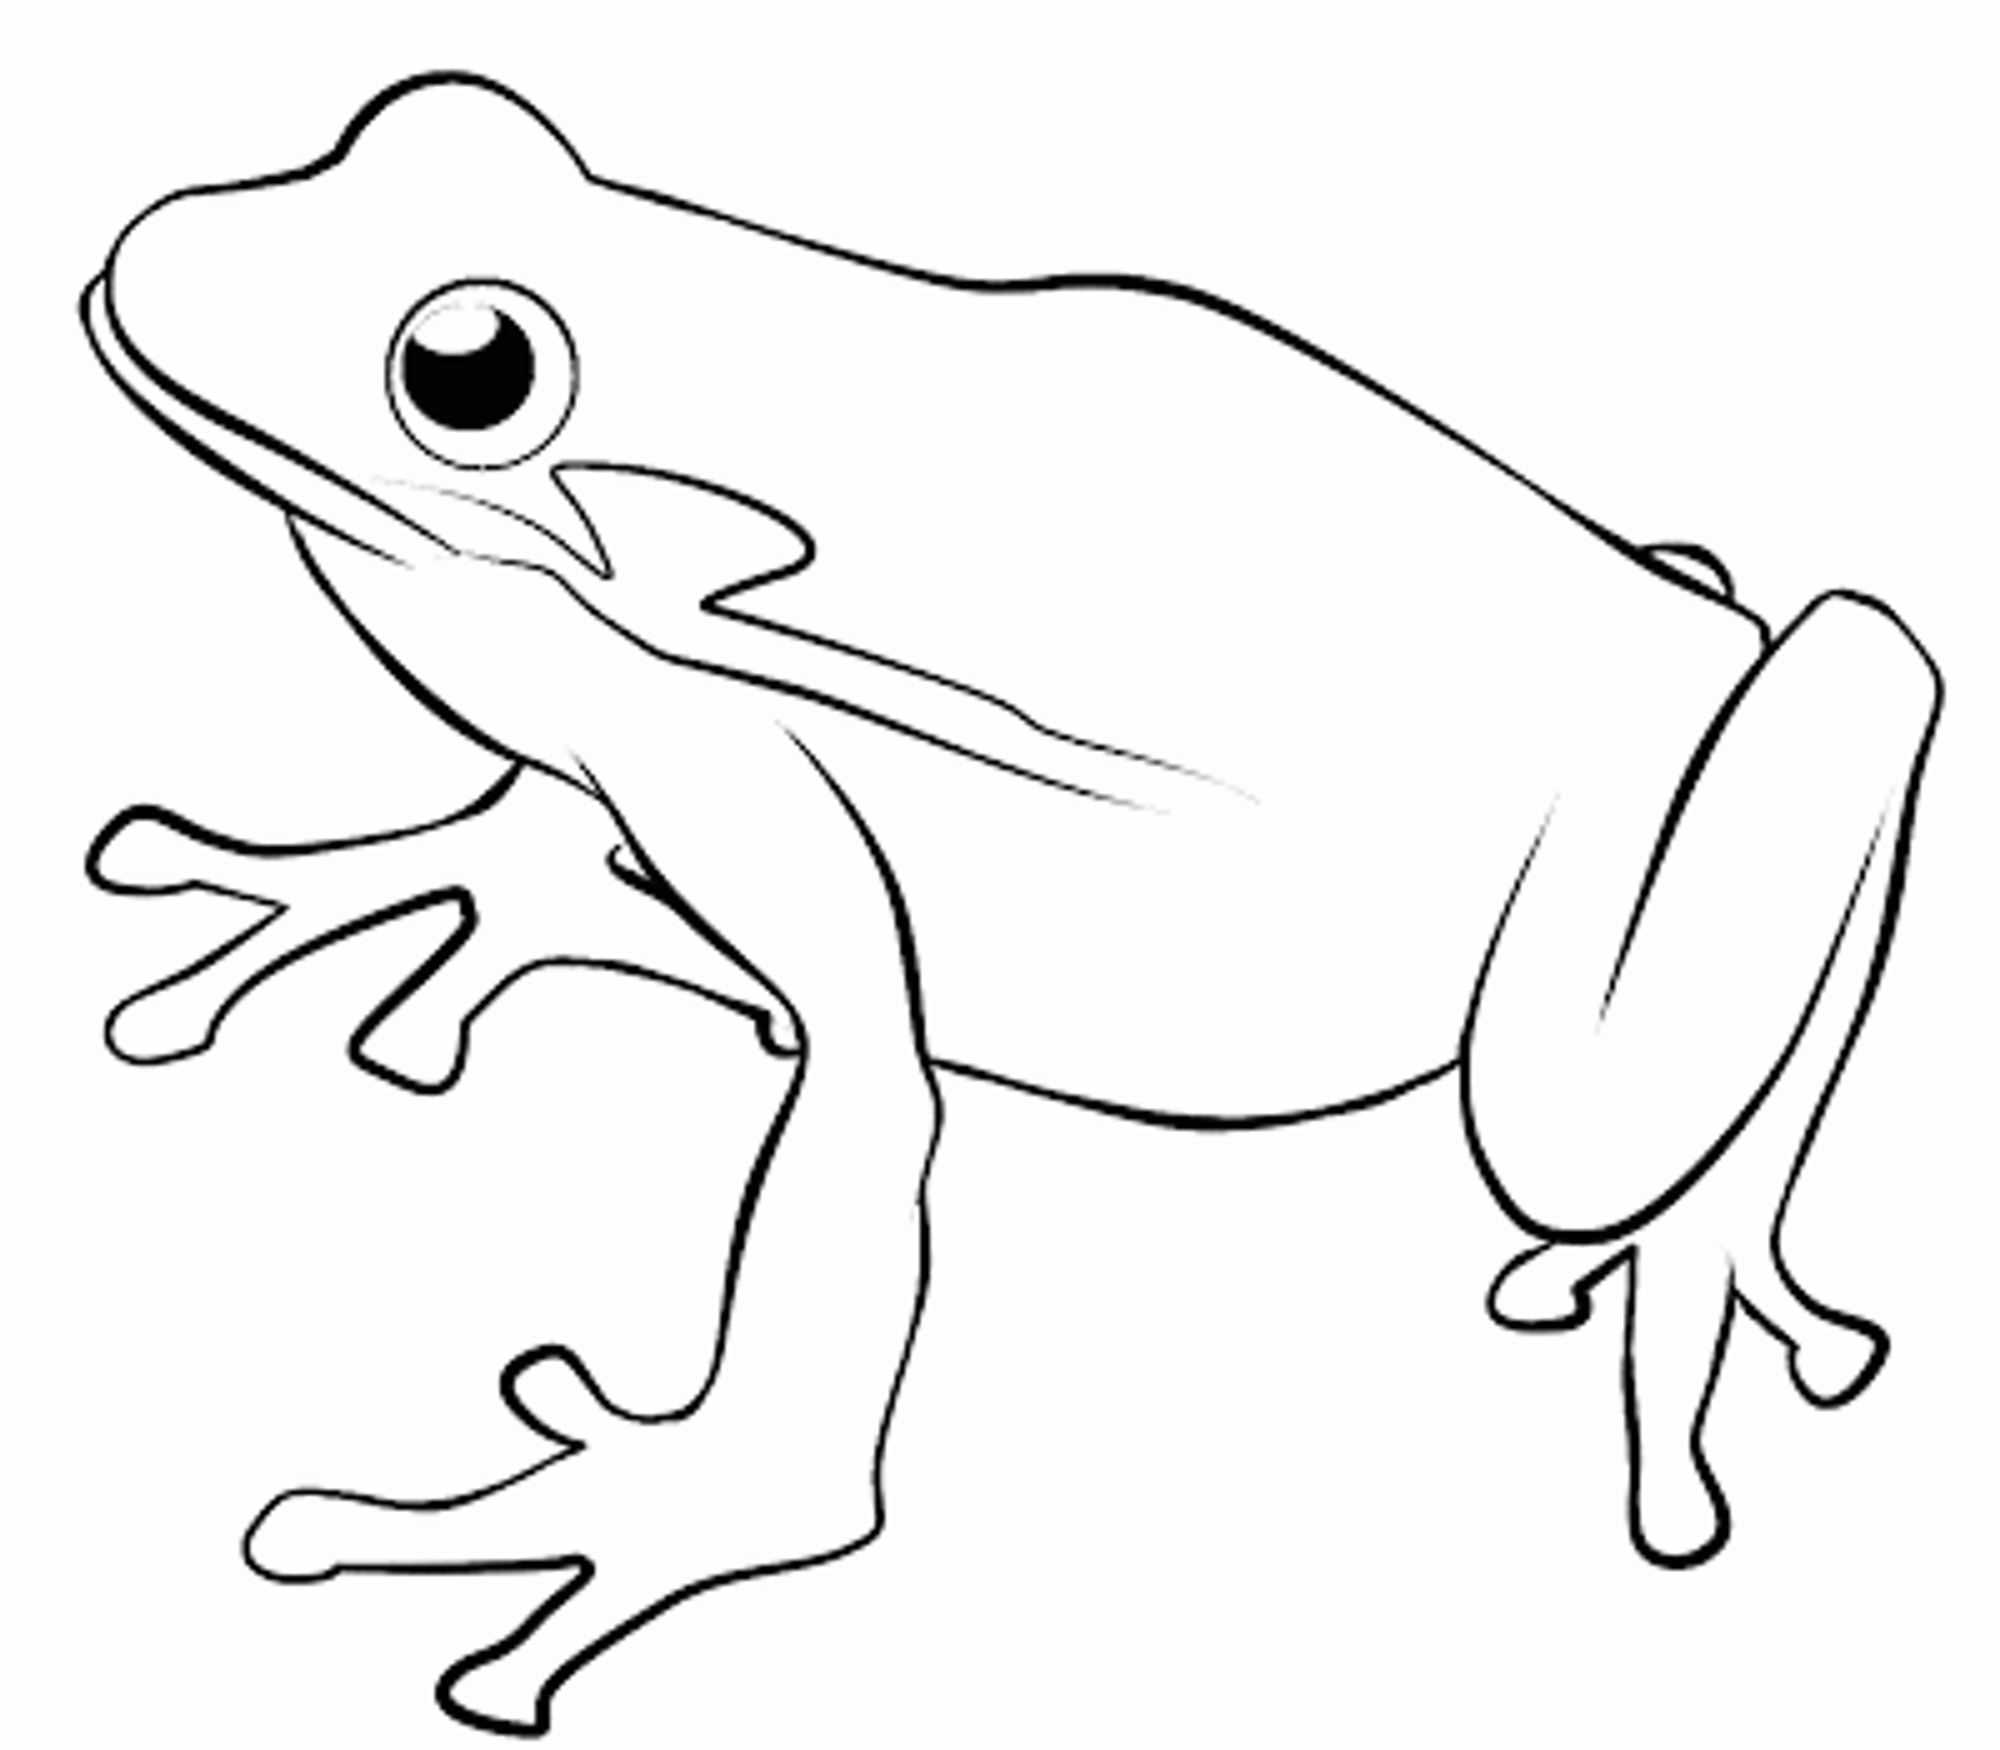 coloring image of a frog frog pages for coloring stackbookmarksinfo a of frog image coloring